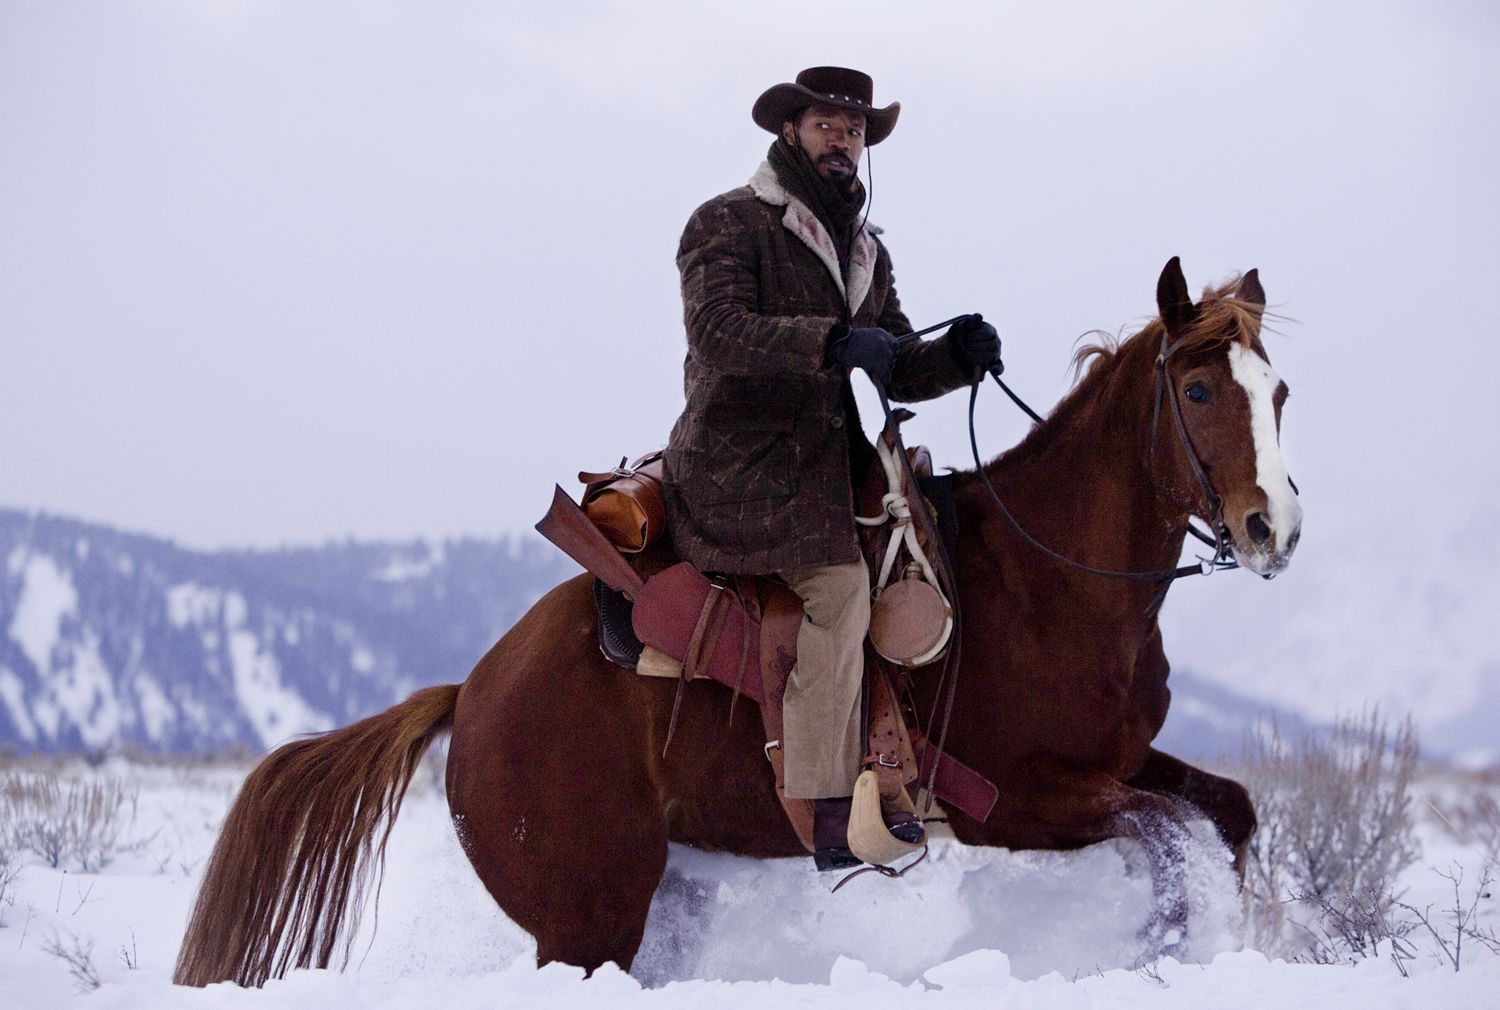 DJANGO UNCHAINED Images Show First Looks at Walton Goggins ...